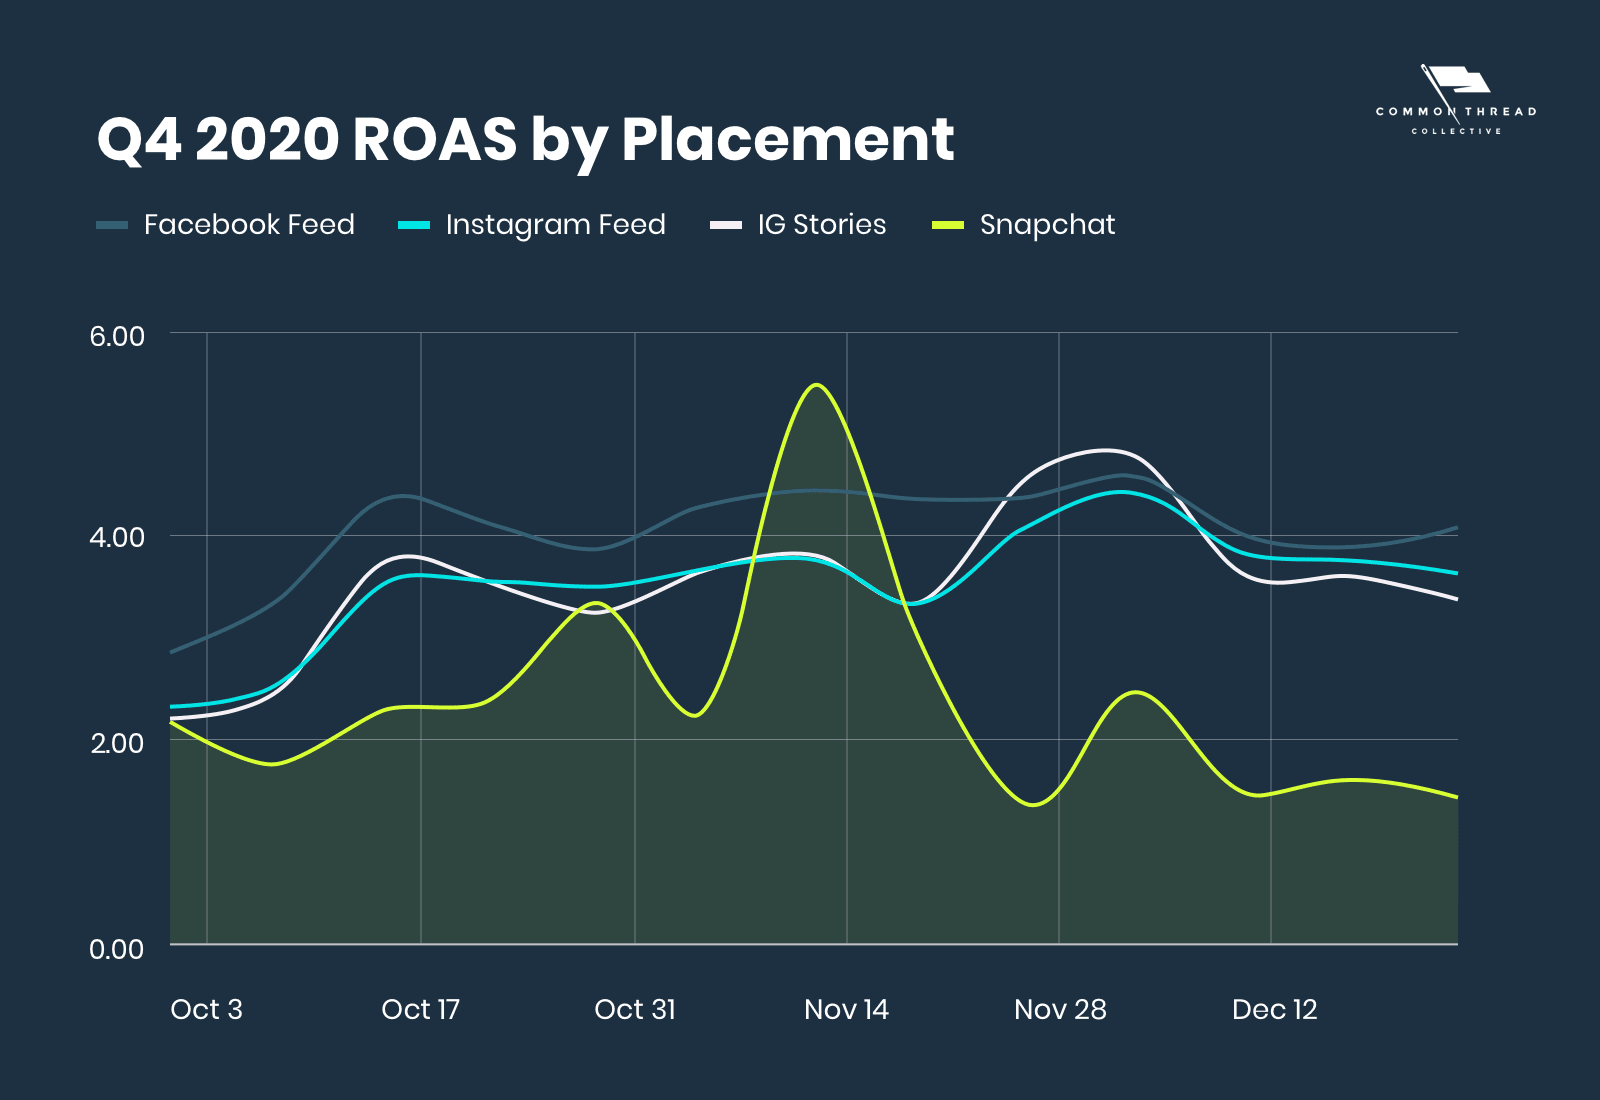 Q4 2020 ROAS by Placement (including SNAP)